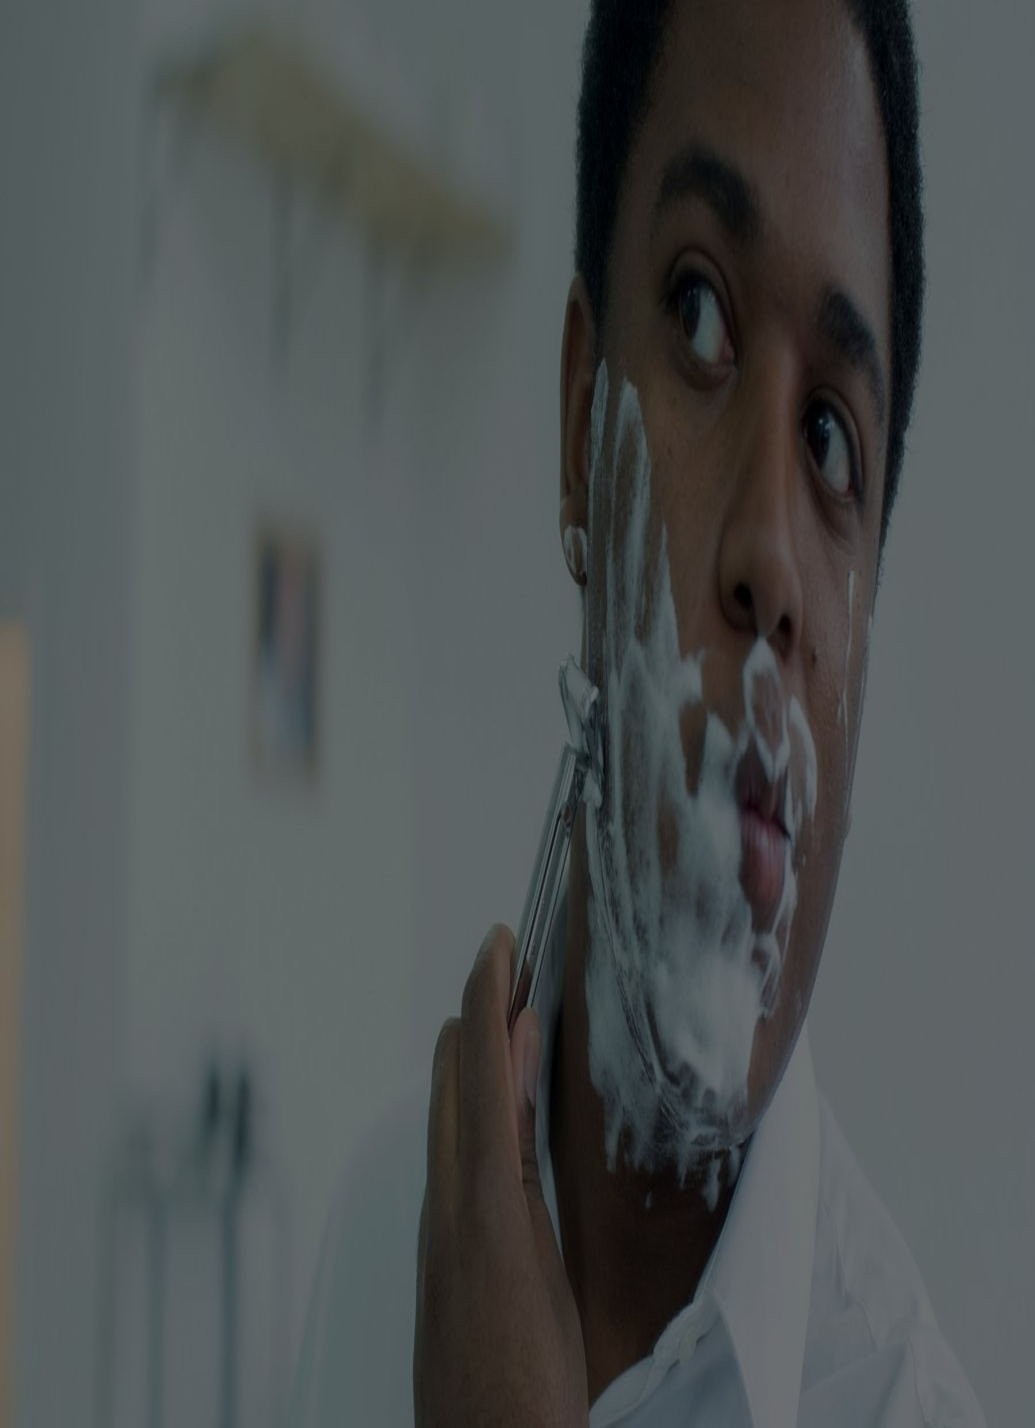 A man with shaving cream on his face looking into the mirror